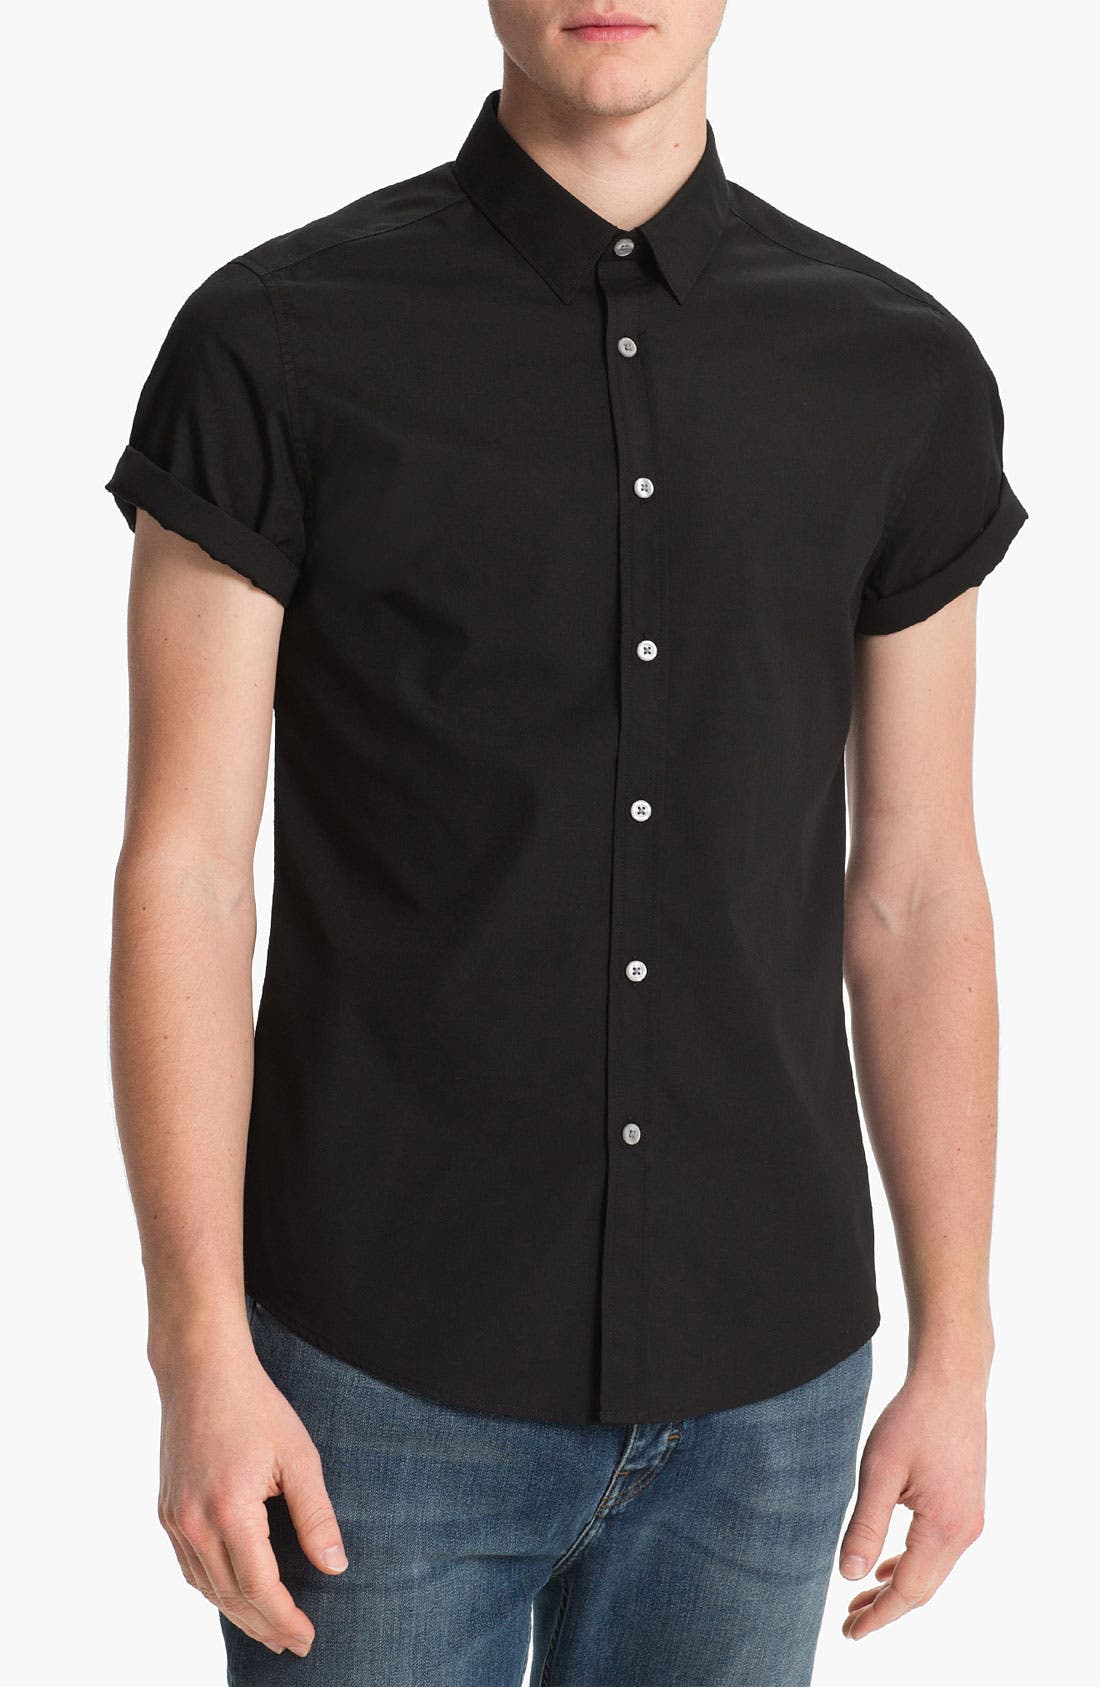 Alternate Image 1 Selected - Topman 'Smart' Short Sleeve Shirt